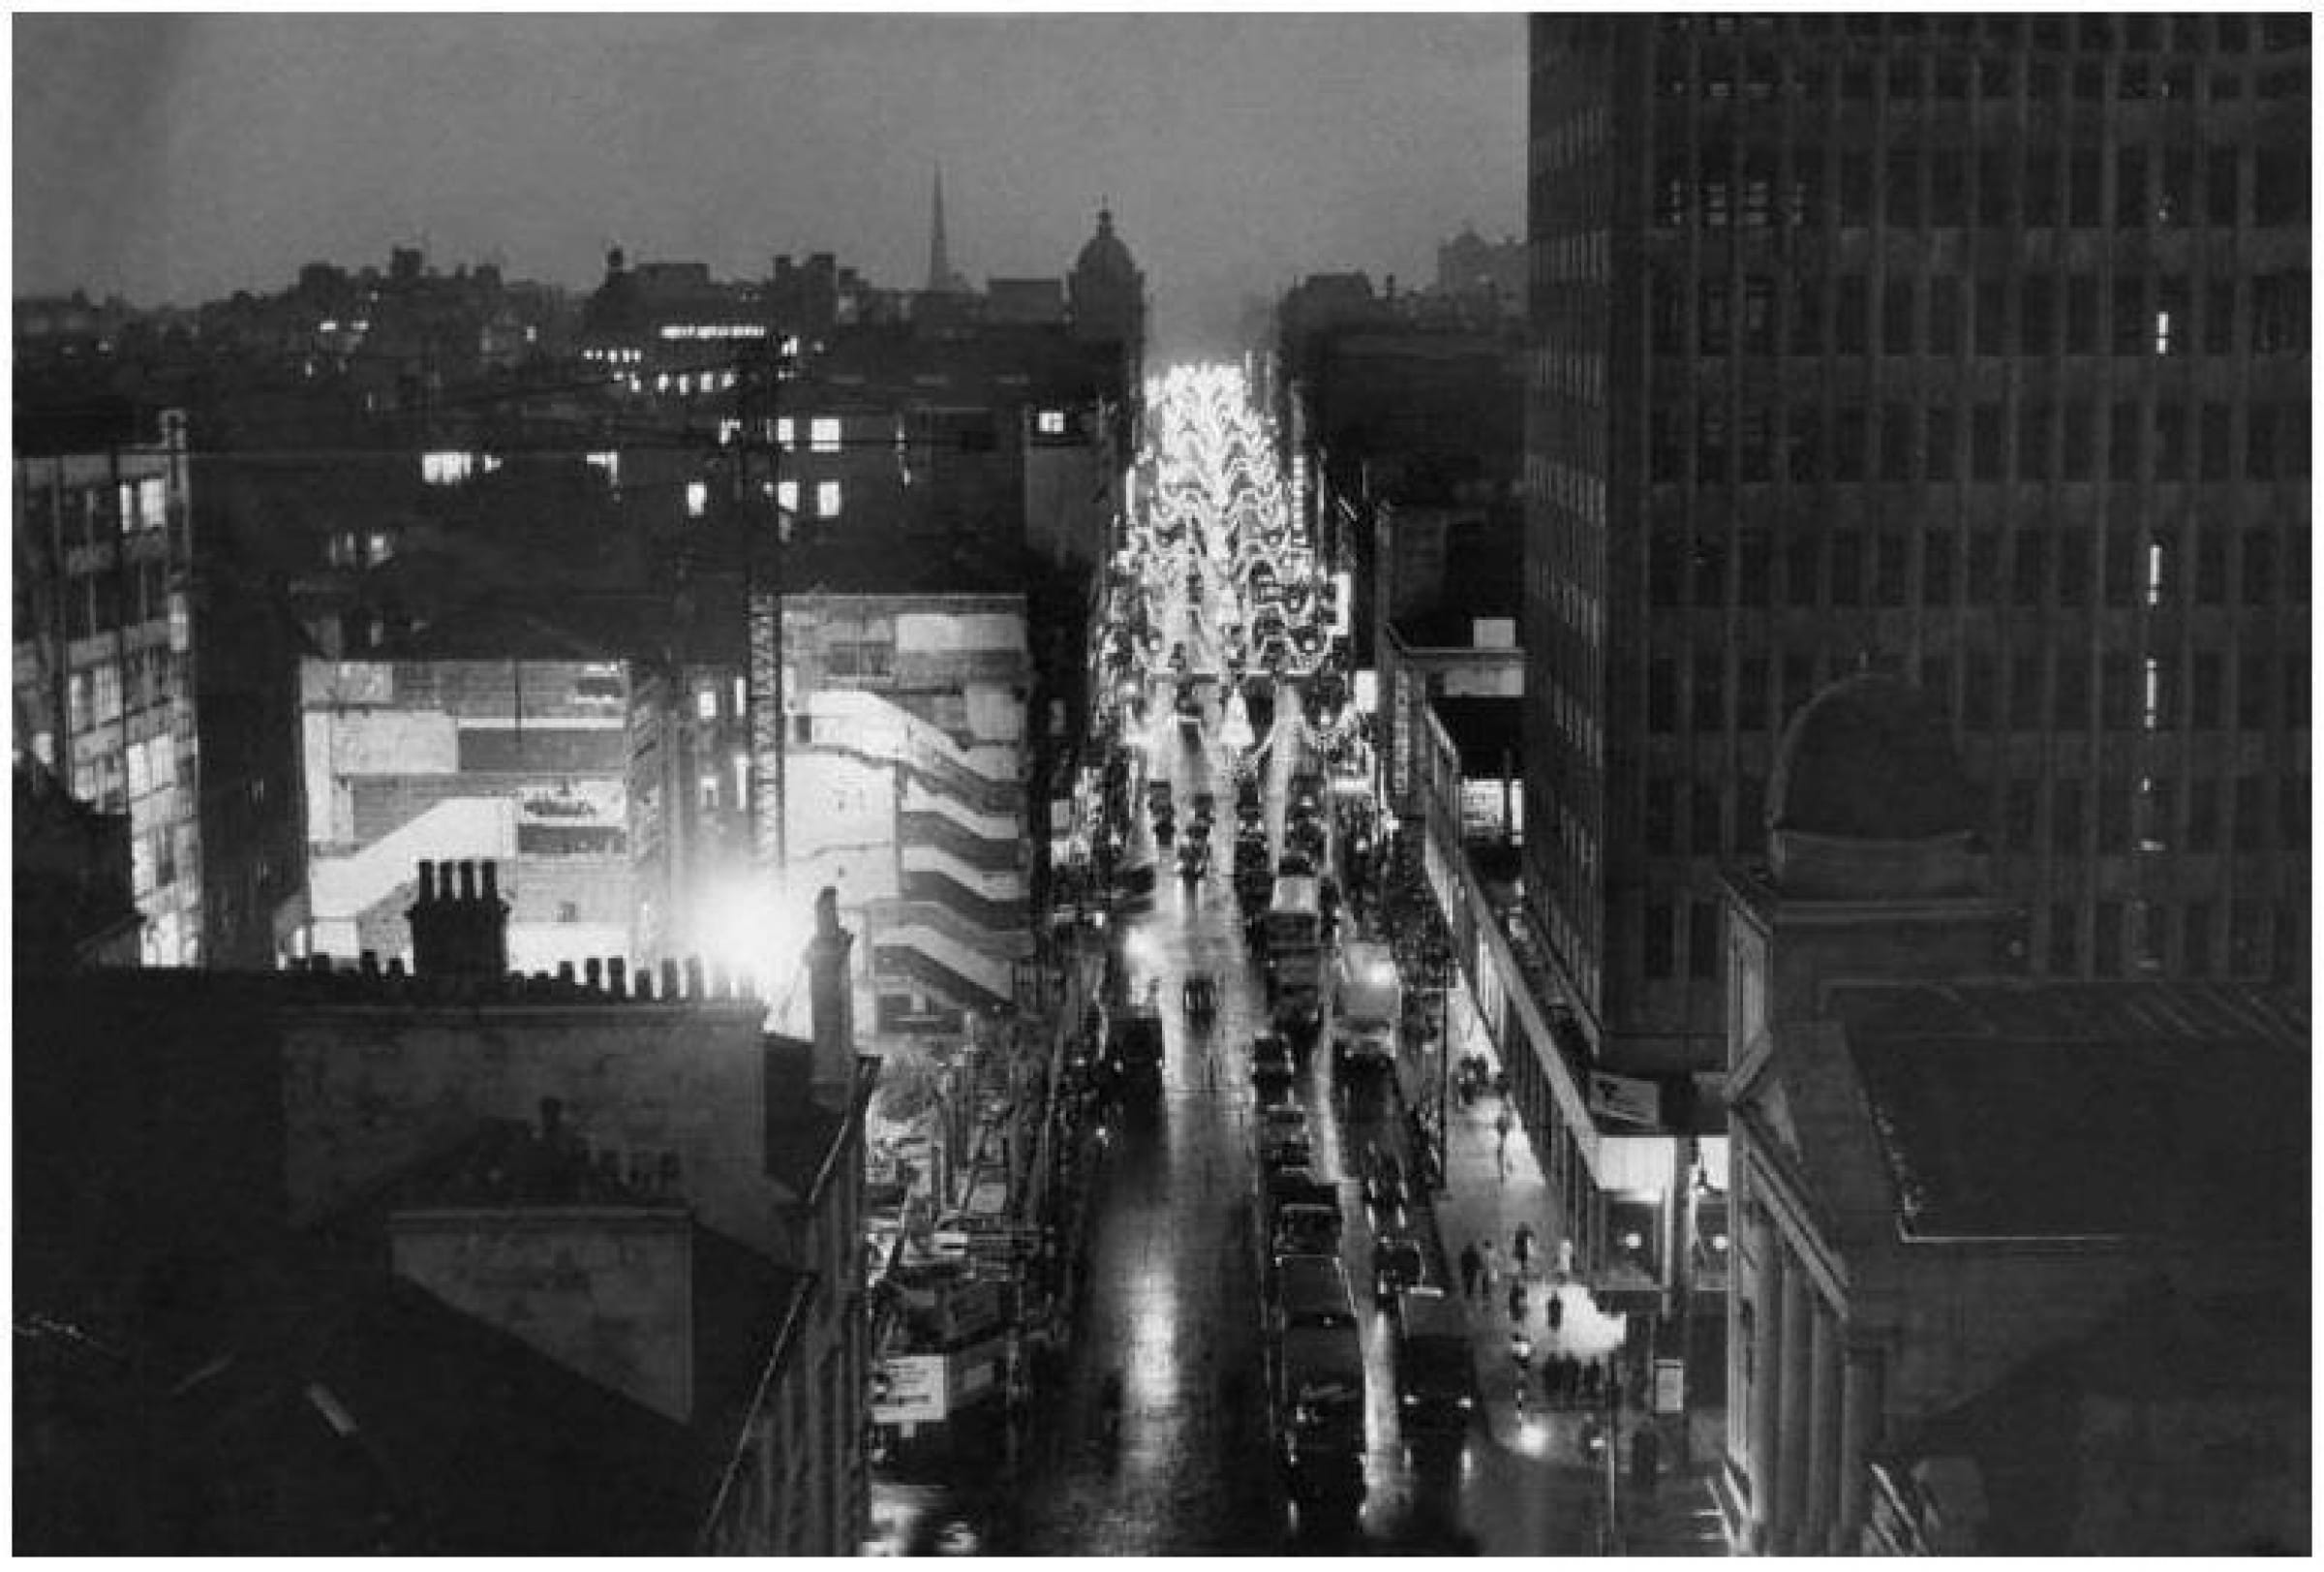 Let there be lights (Sauchiehall Street, looking west, Christmas 1963)